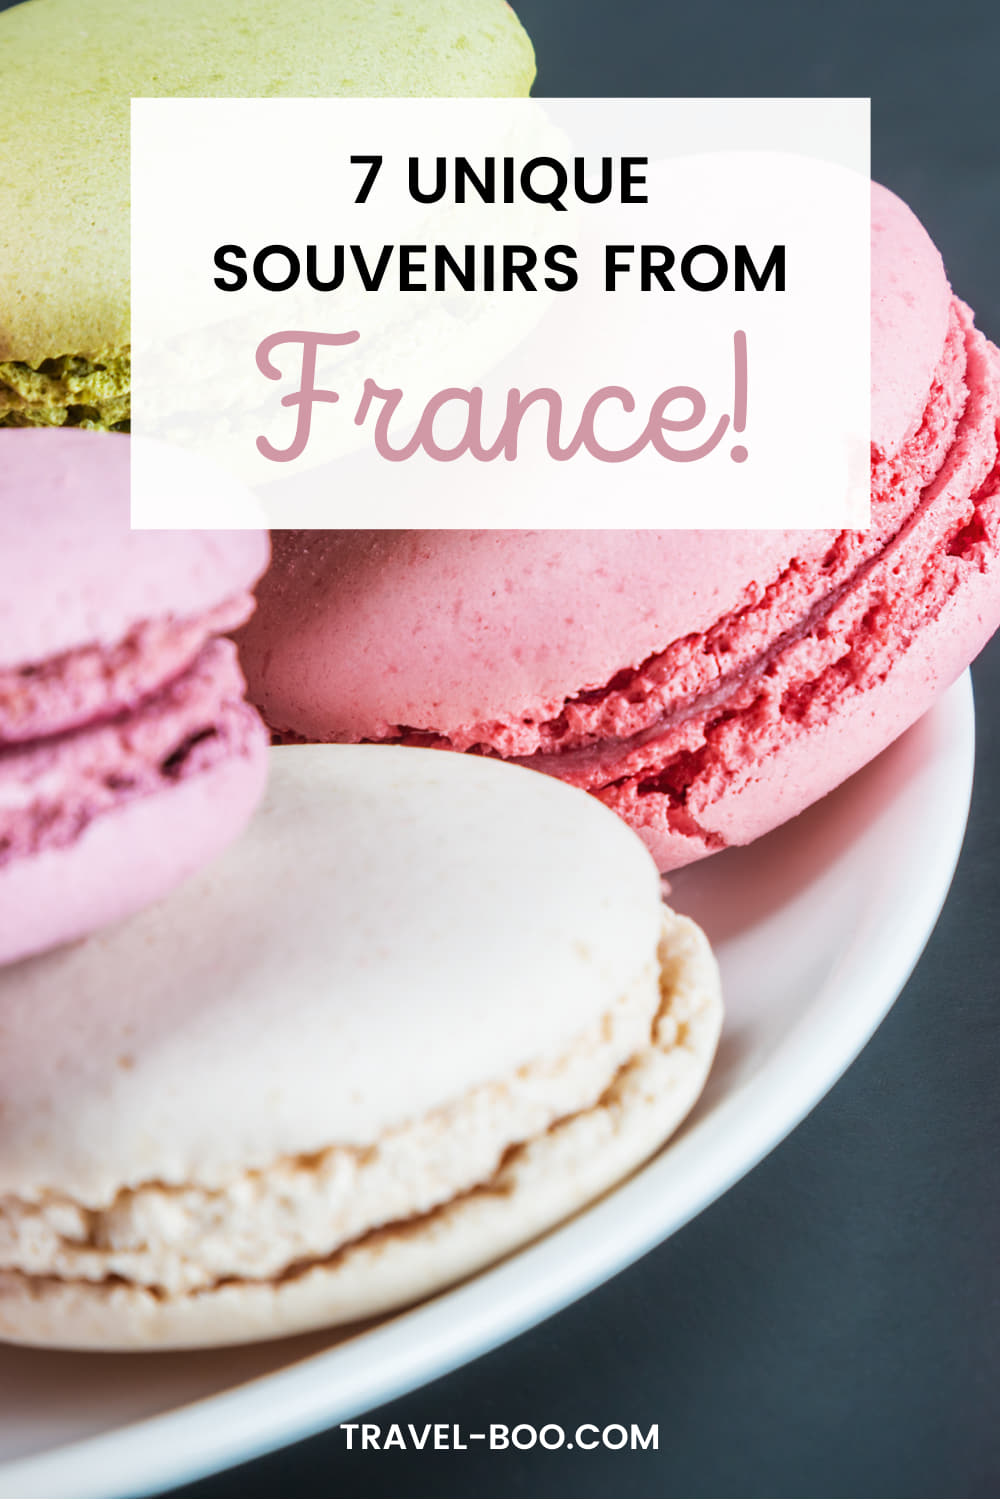 7 Best Souvenirs from France, Wha to Buy on a Trip to France! France Travel, French Souvenirs, Paris Souvenirs, Paris Travel, Paris Travel Guide, France Travel Guide.